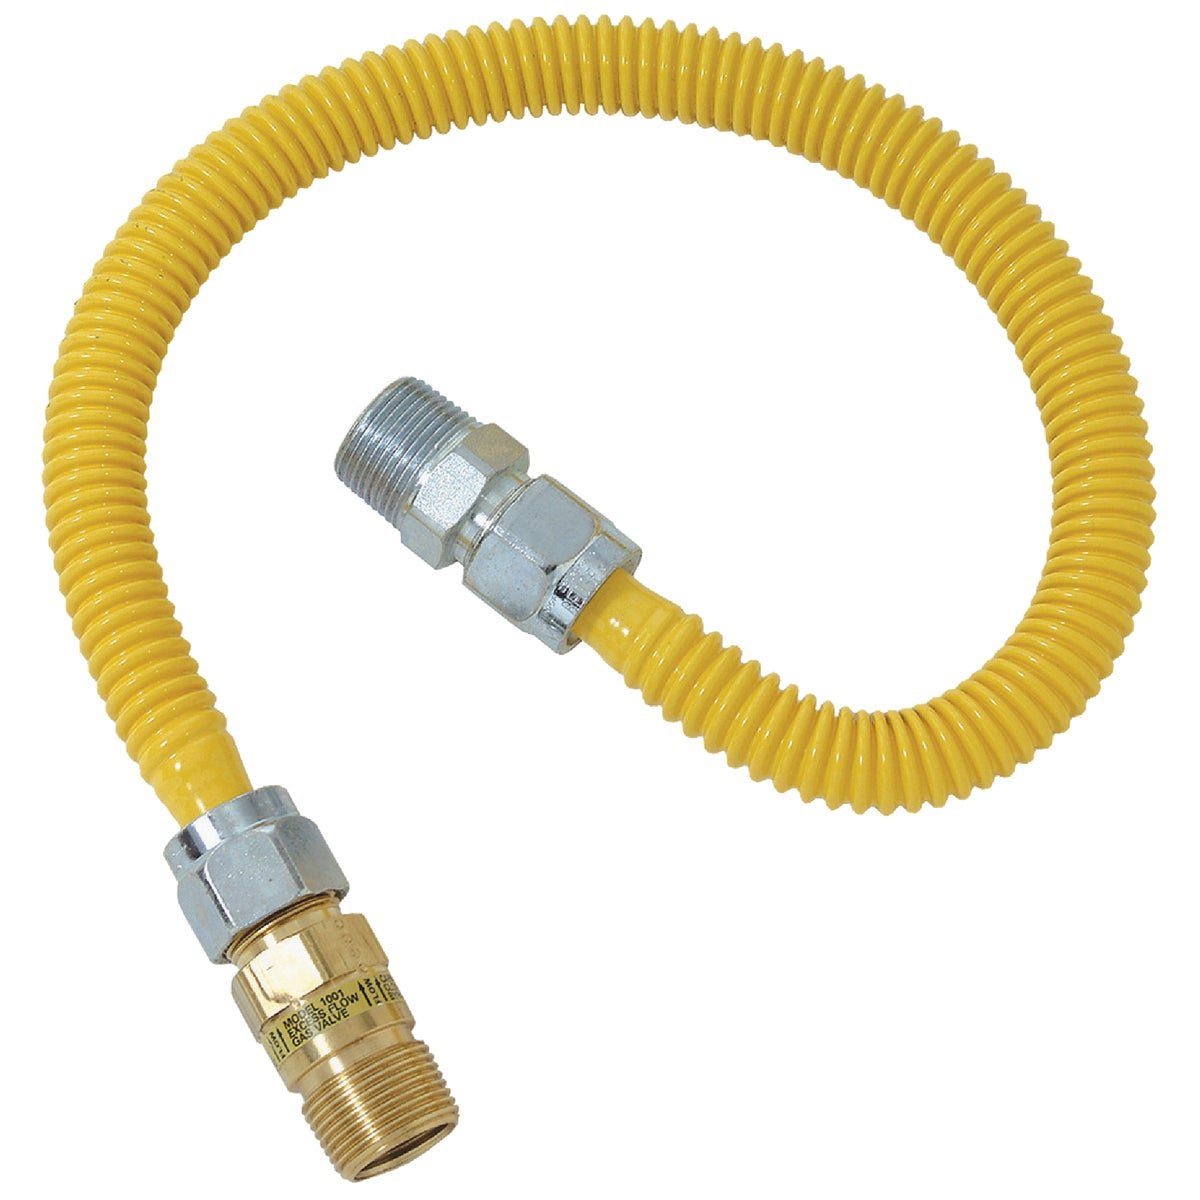 1/2X1/2-24 GAS CONNECTOR - CSSC44E-24P by Brass Craft